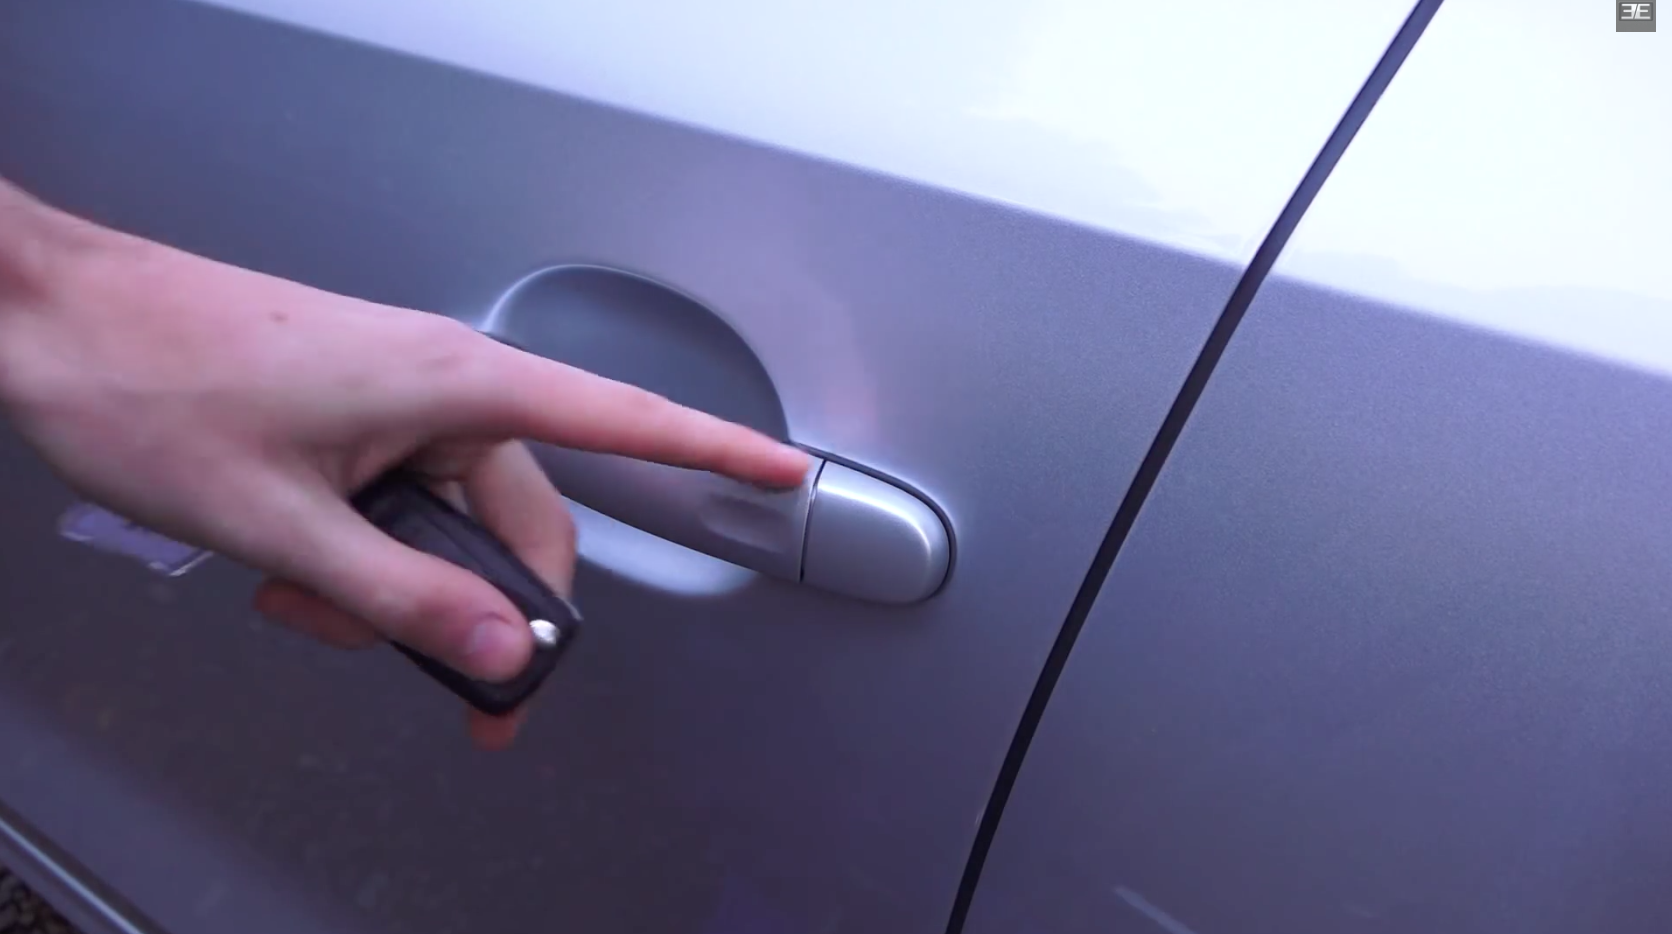 2015 jetta key lock handle